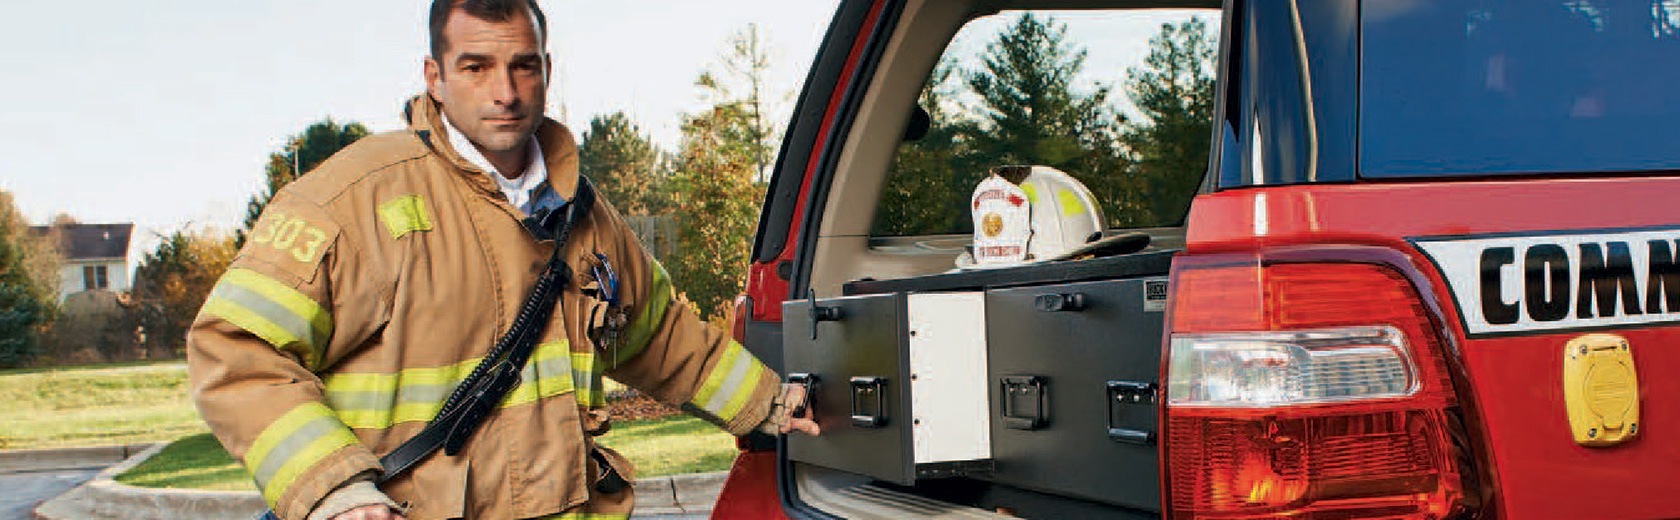 AEDs in Fire and EMS